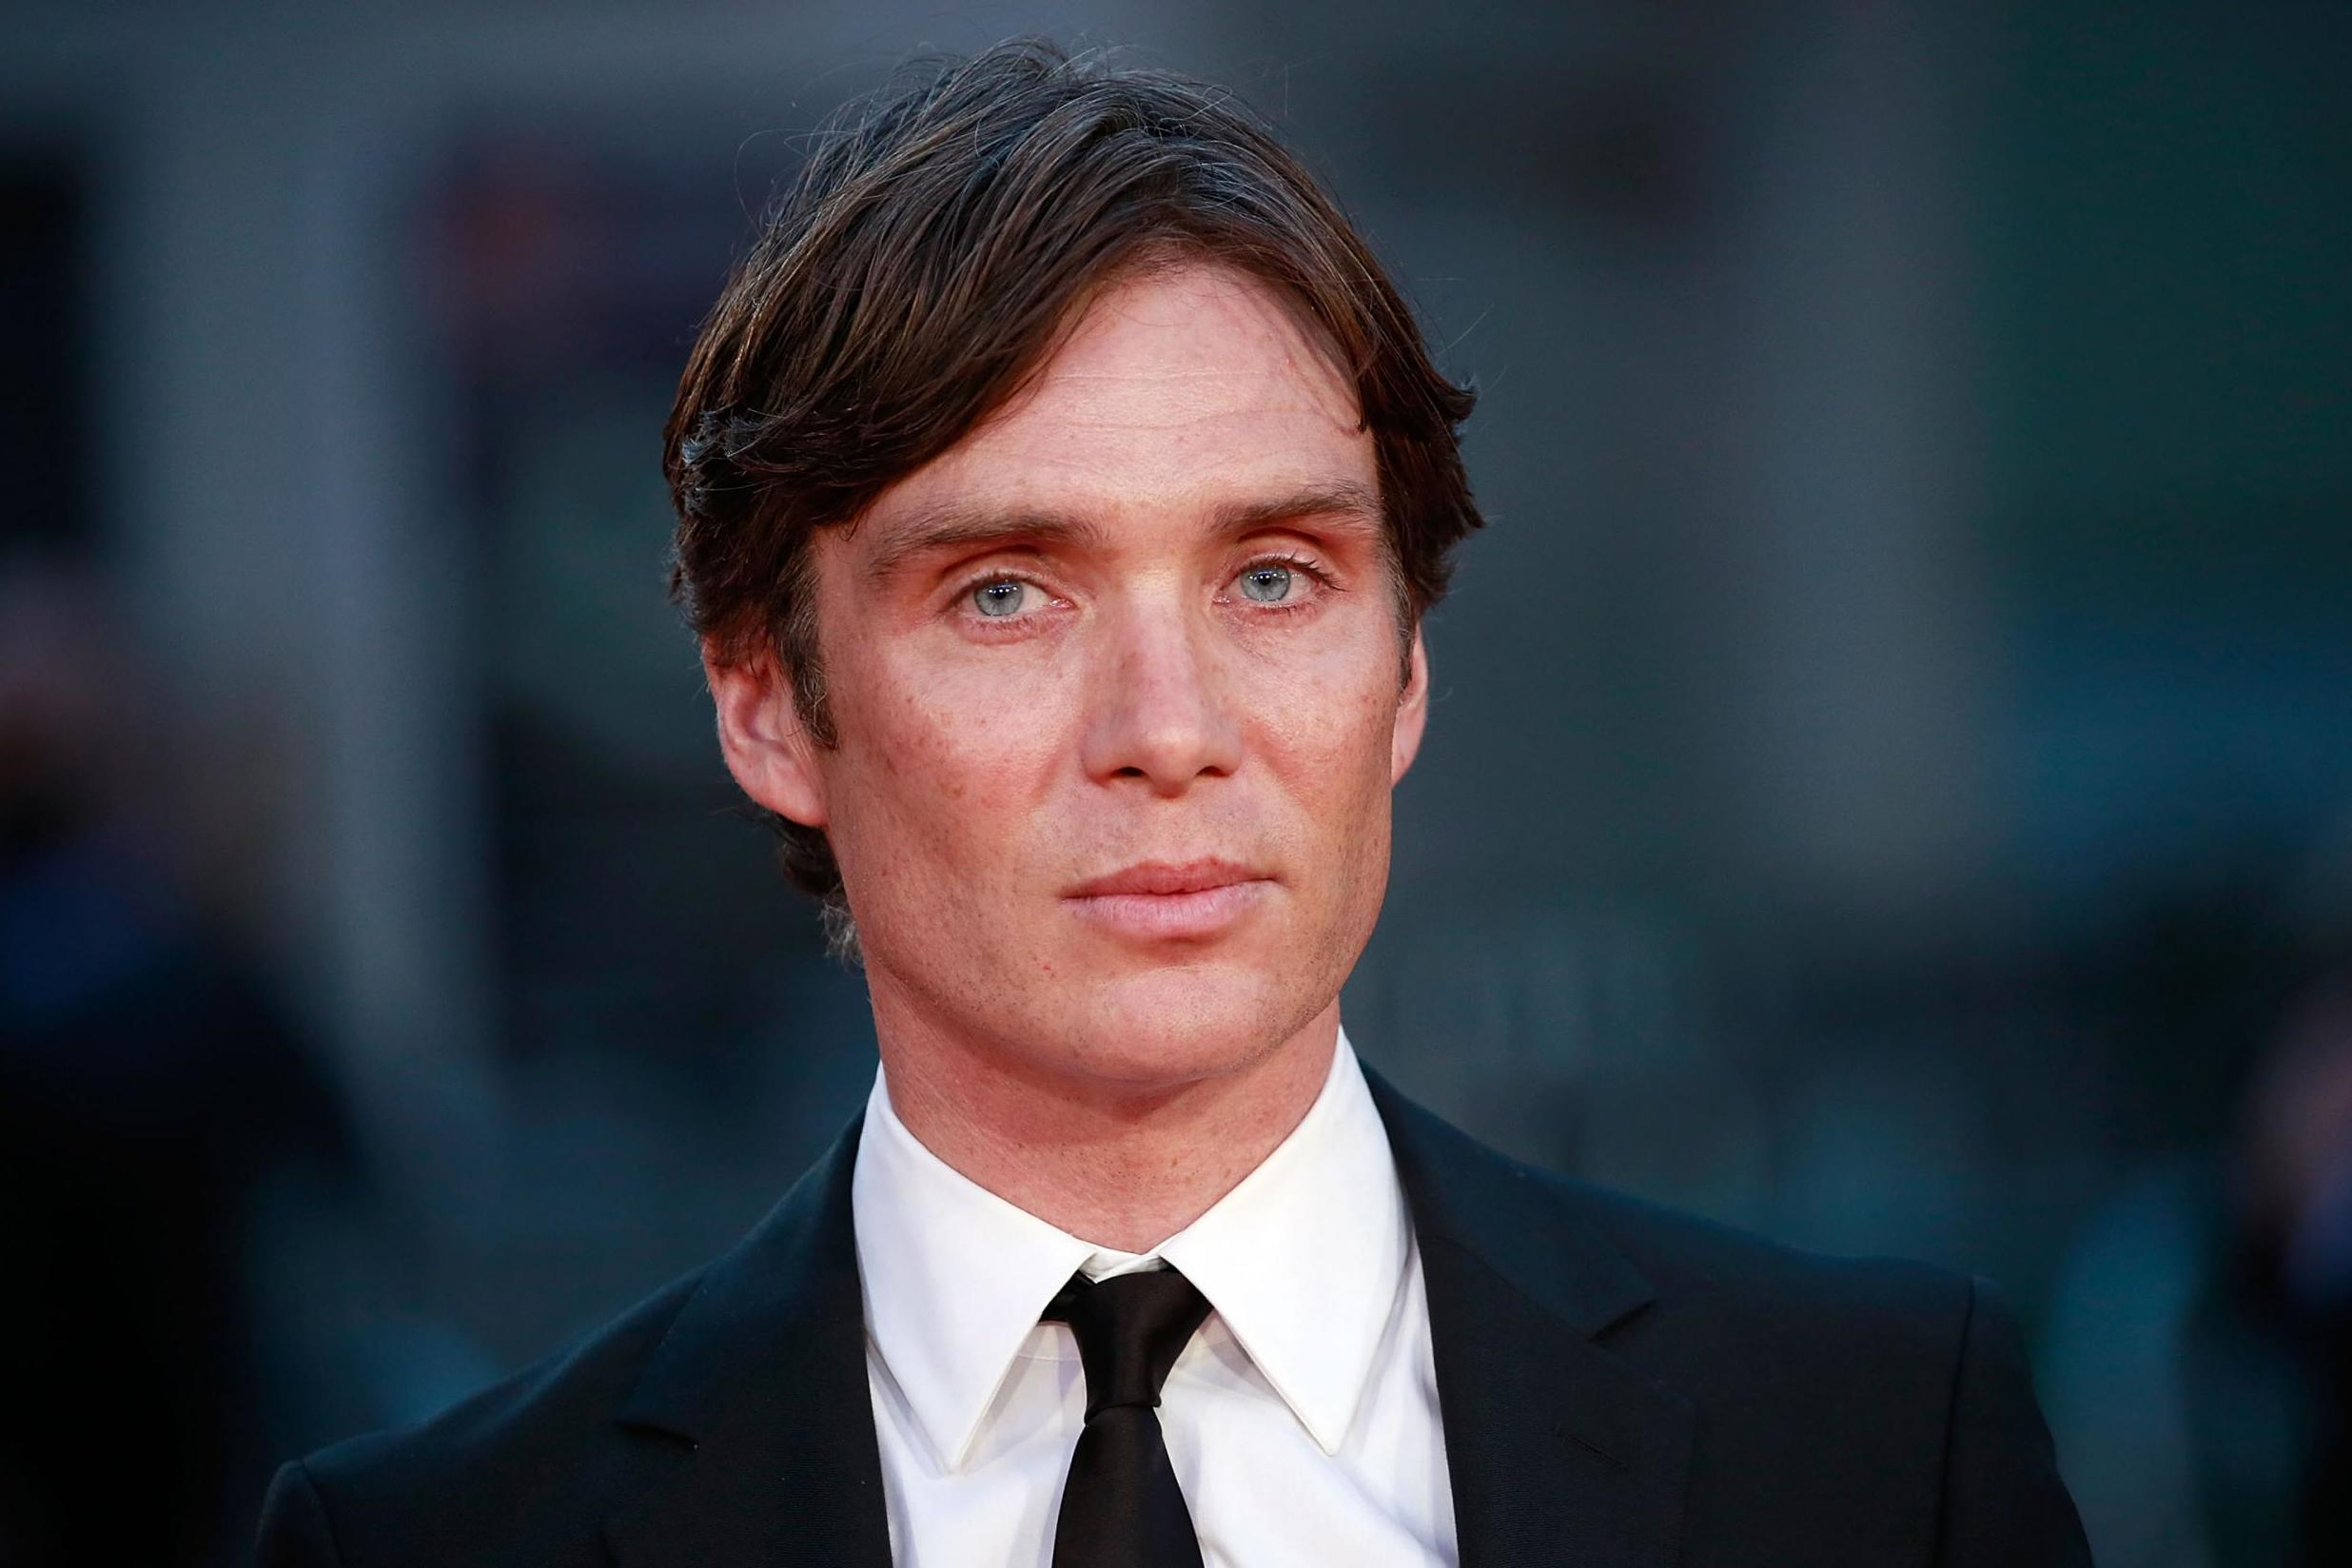 The 44-year old son of father (?) and mother(?) Cillian Murphy in 2020 photo. Cillian Murphy earned a million dollar salary - leaving the net worth at million in 2020